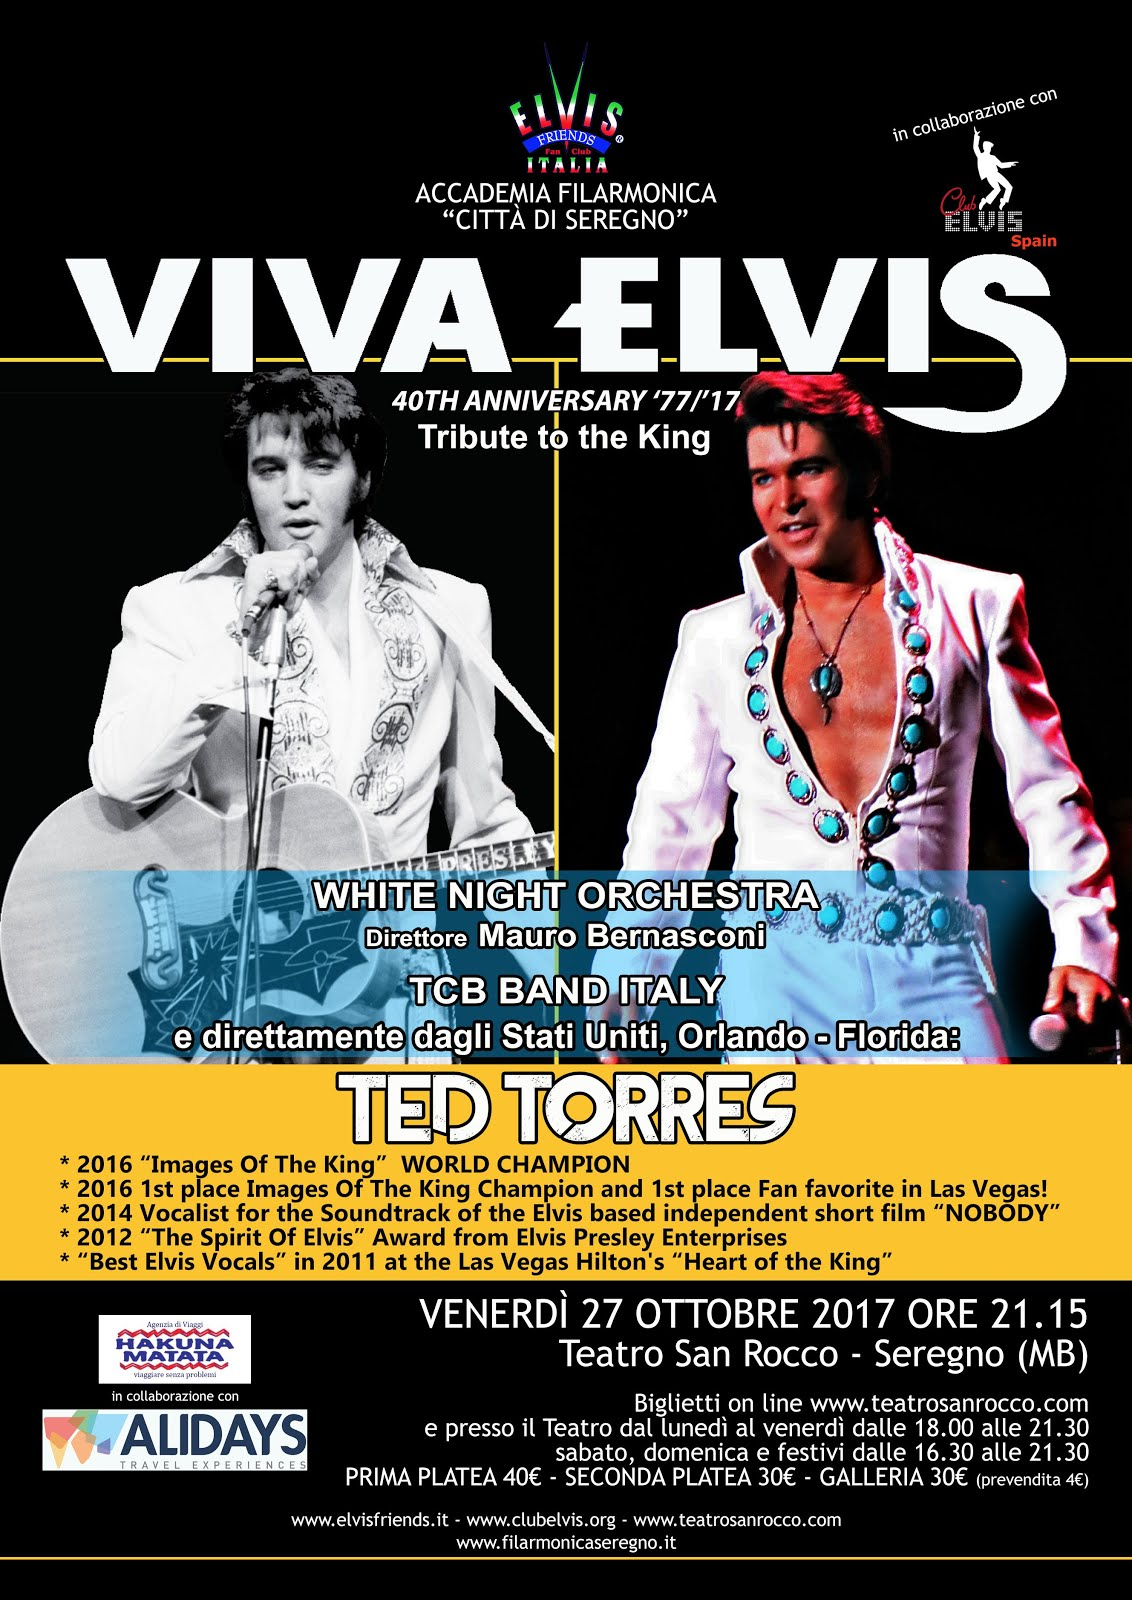 VIVA ELVIS - Elvis tribute